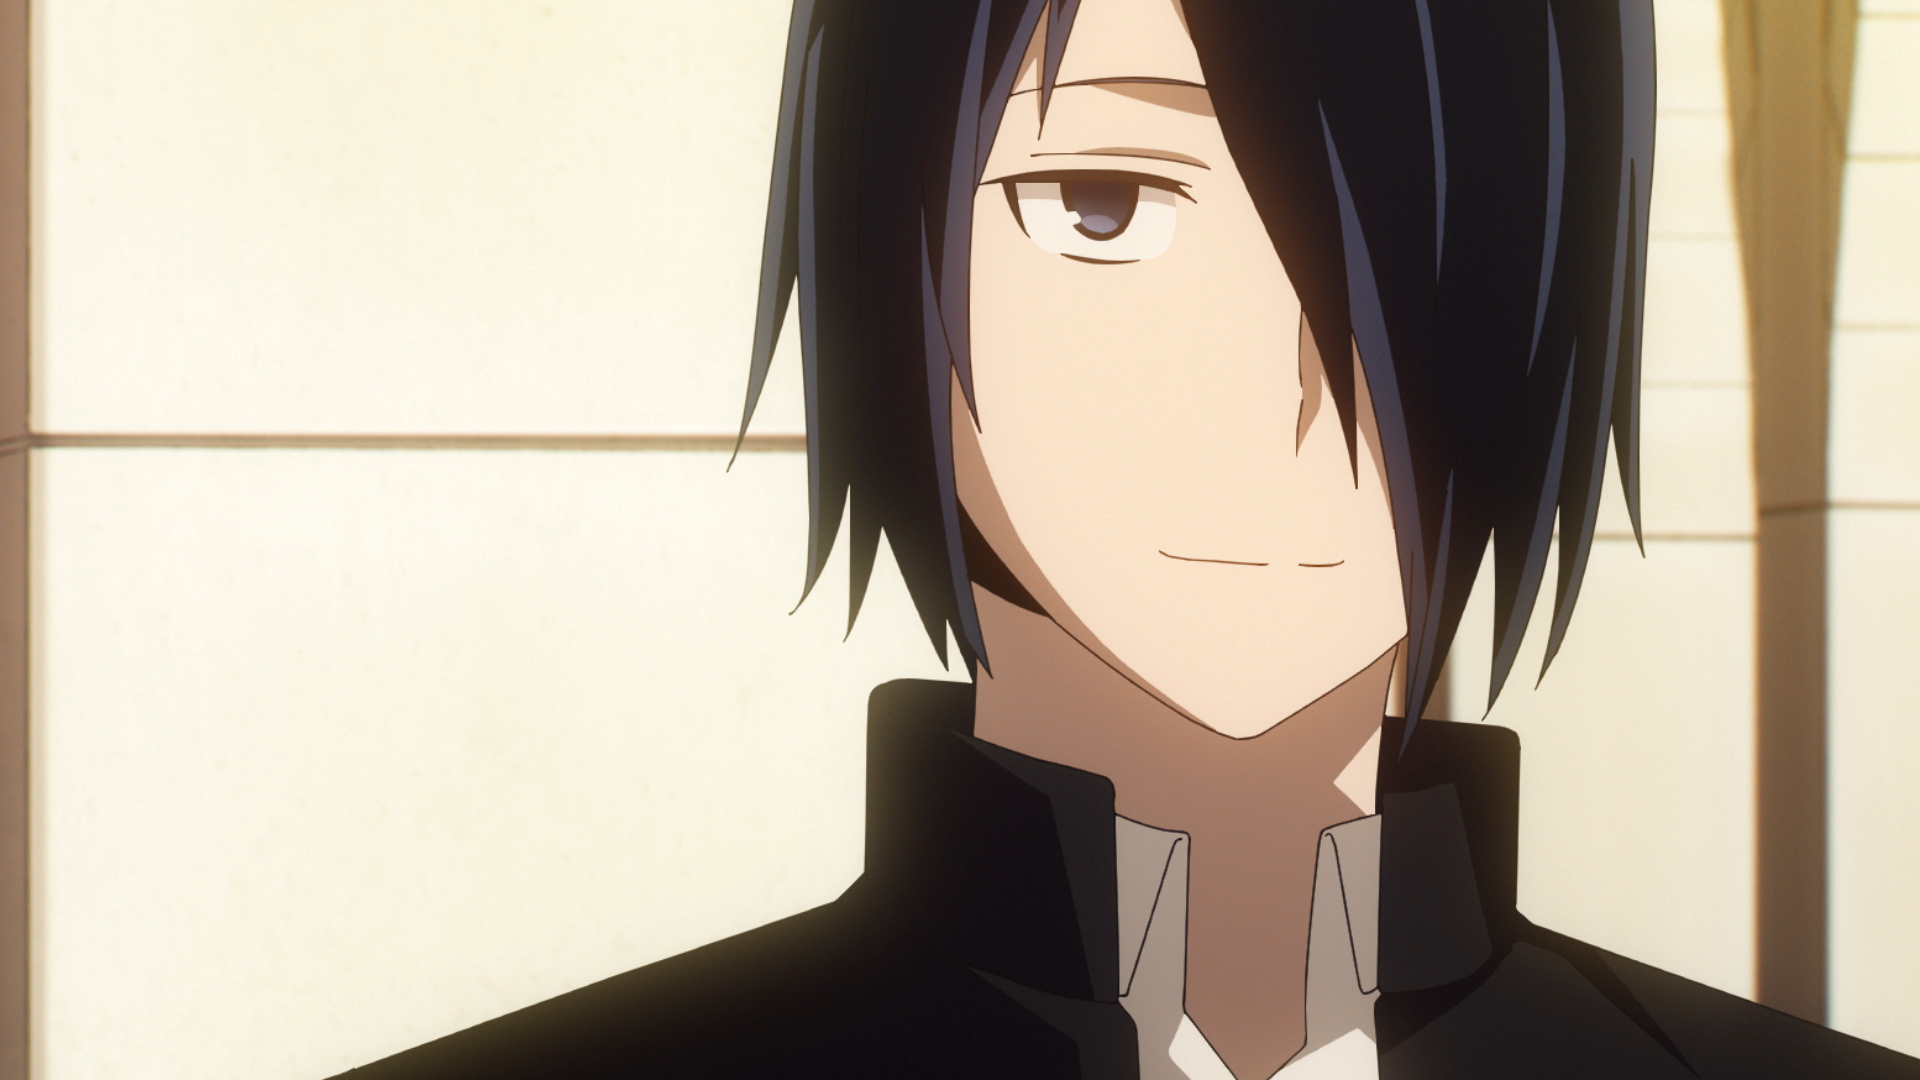 Yuu Ishigami in Kaguya Sama Love is War season 2 episode 6